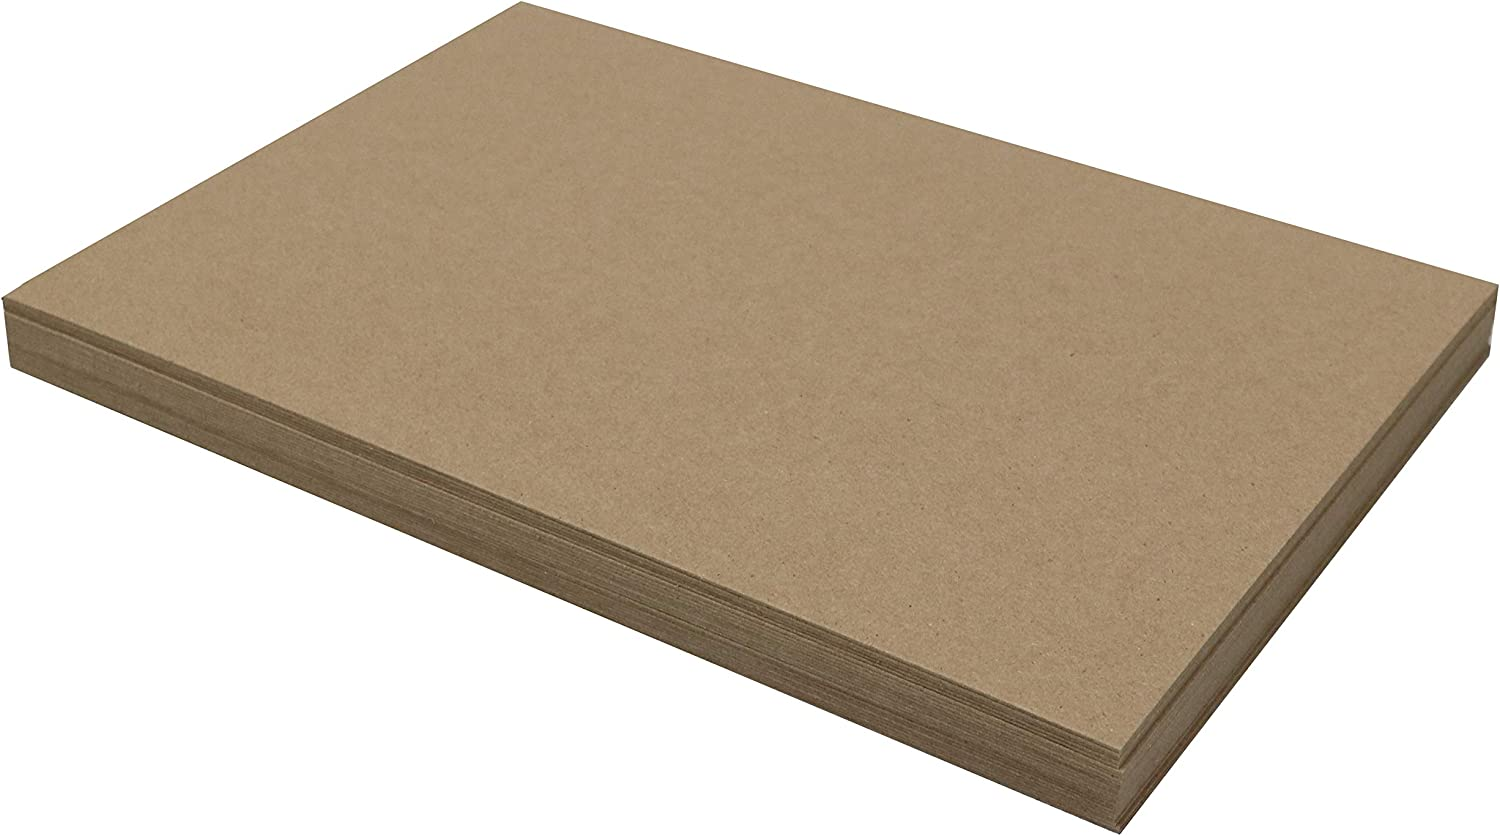 25 Chipboard Max 42% OFF Sheets free 11 x 17 inch Weight Point - 50pt Heavy Bro